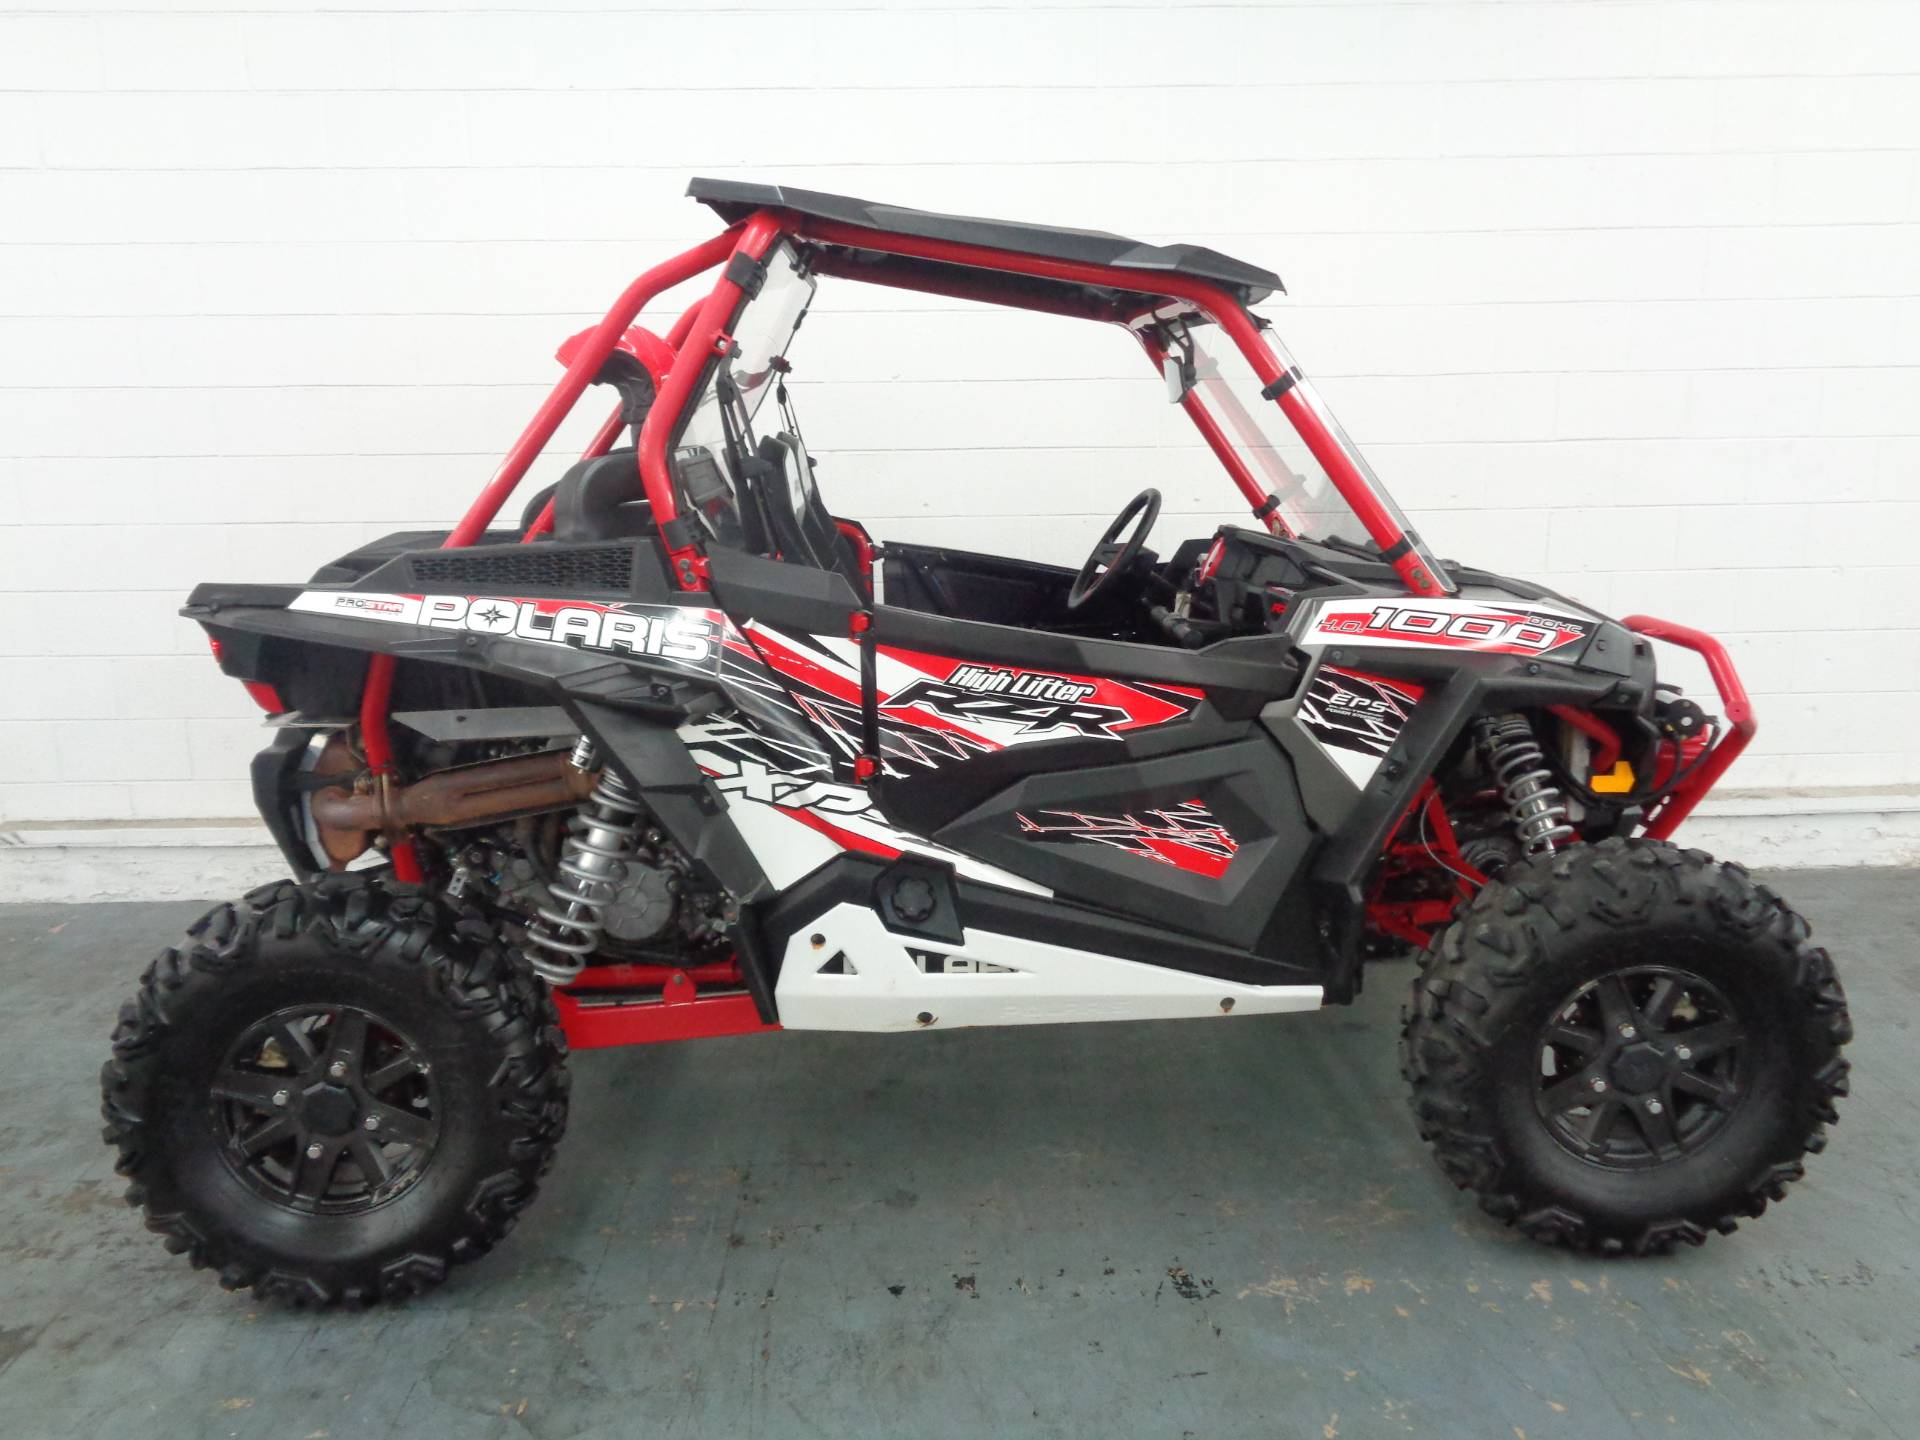 2016 Polaris Rzr Xp 1000 Eps High Lifter Edition In Tulsa Oklahoma